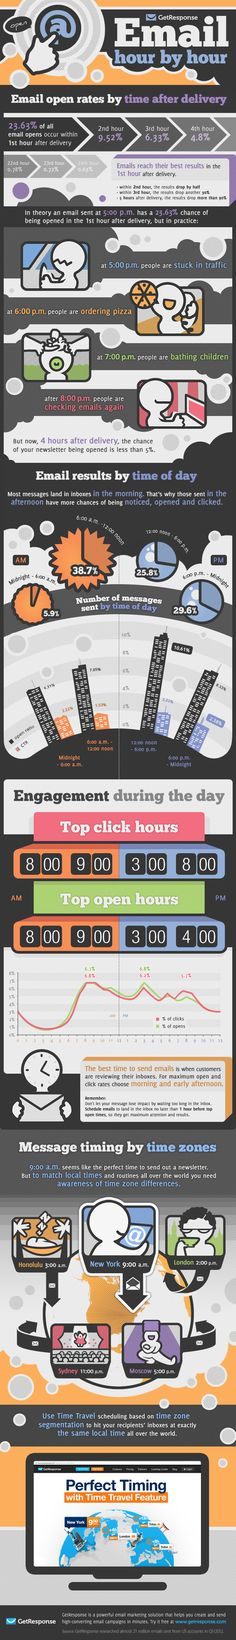 What Is The Best Time Of The Day To Send Emails For Maximum Opens And Clicks? Here's The Answer. #infographic #webmarketing